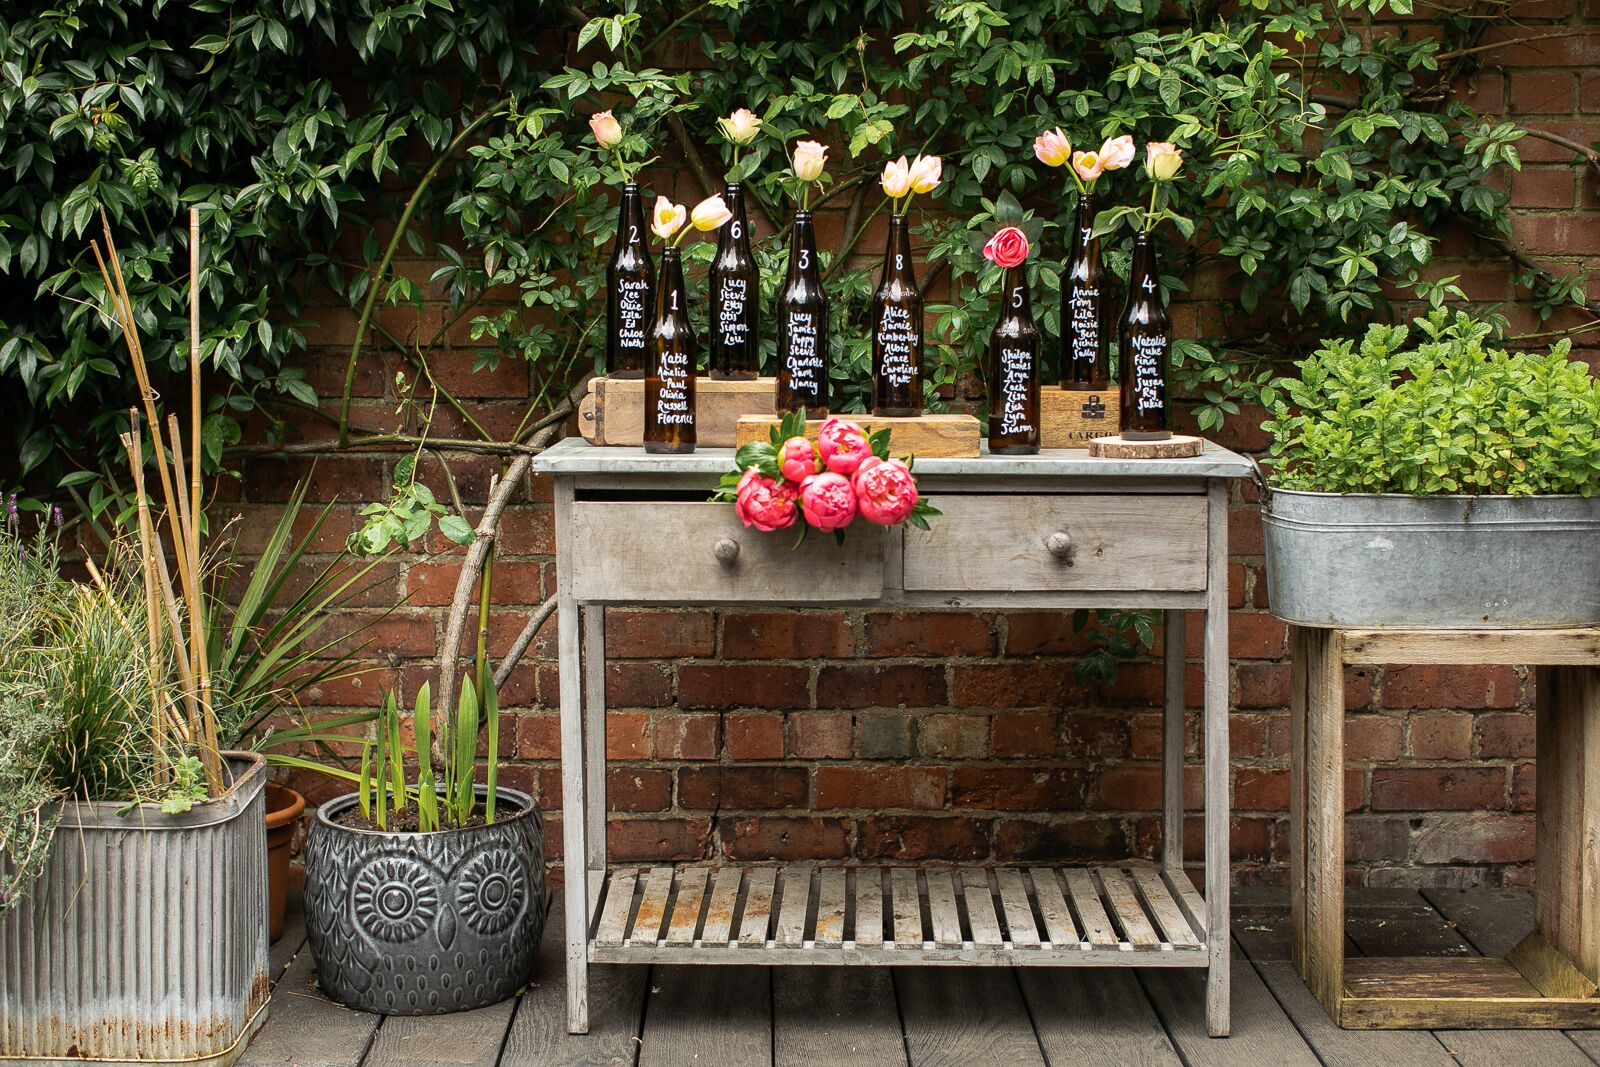 Glass bottle table plan created using brown beer bottles and flowers, resting upon a rustic table in front of a brick wall in a traditional English garden